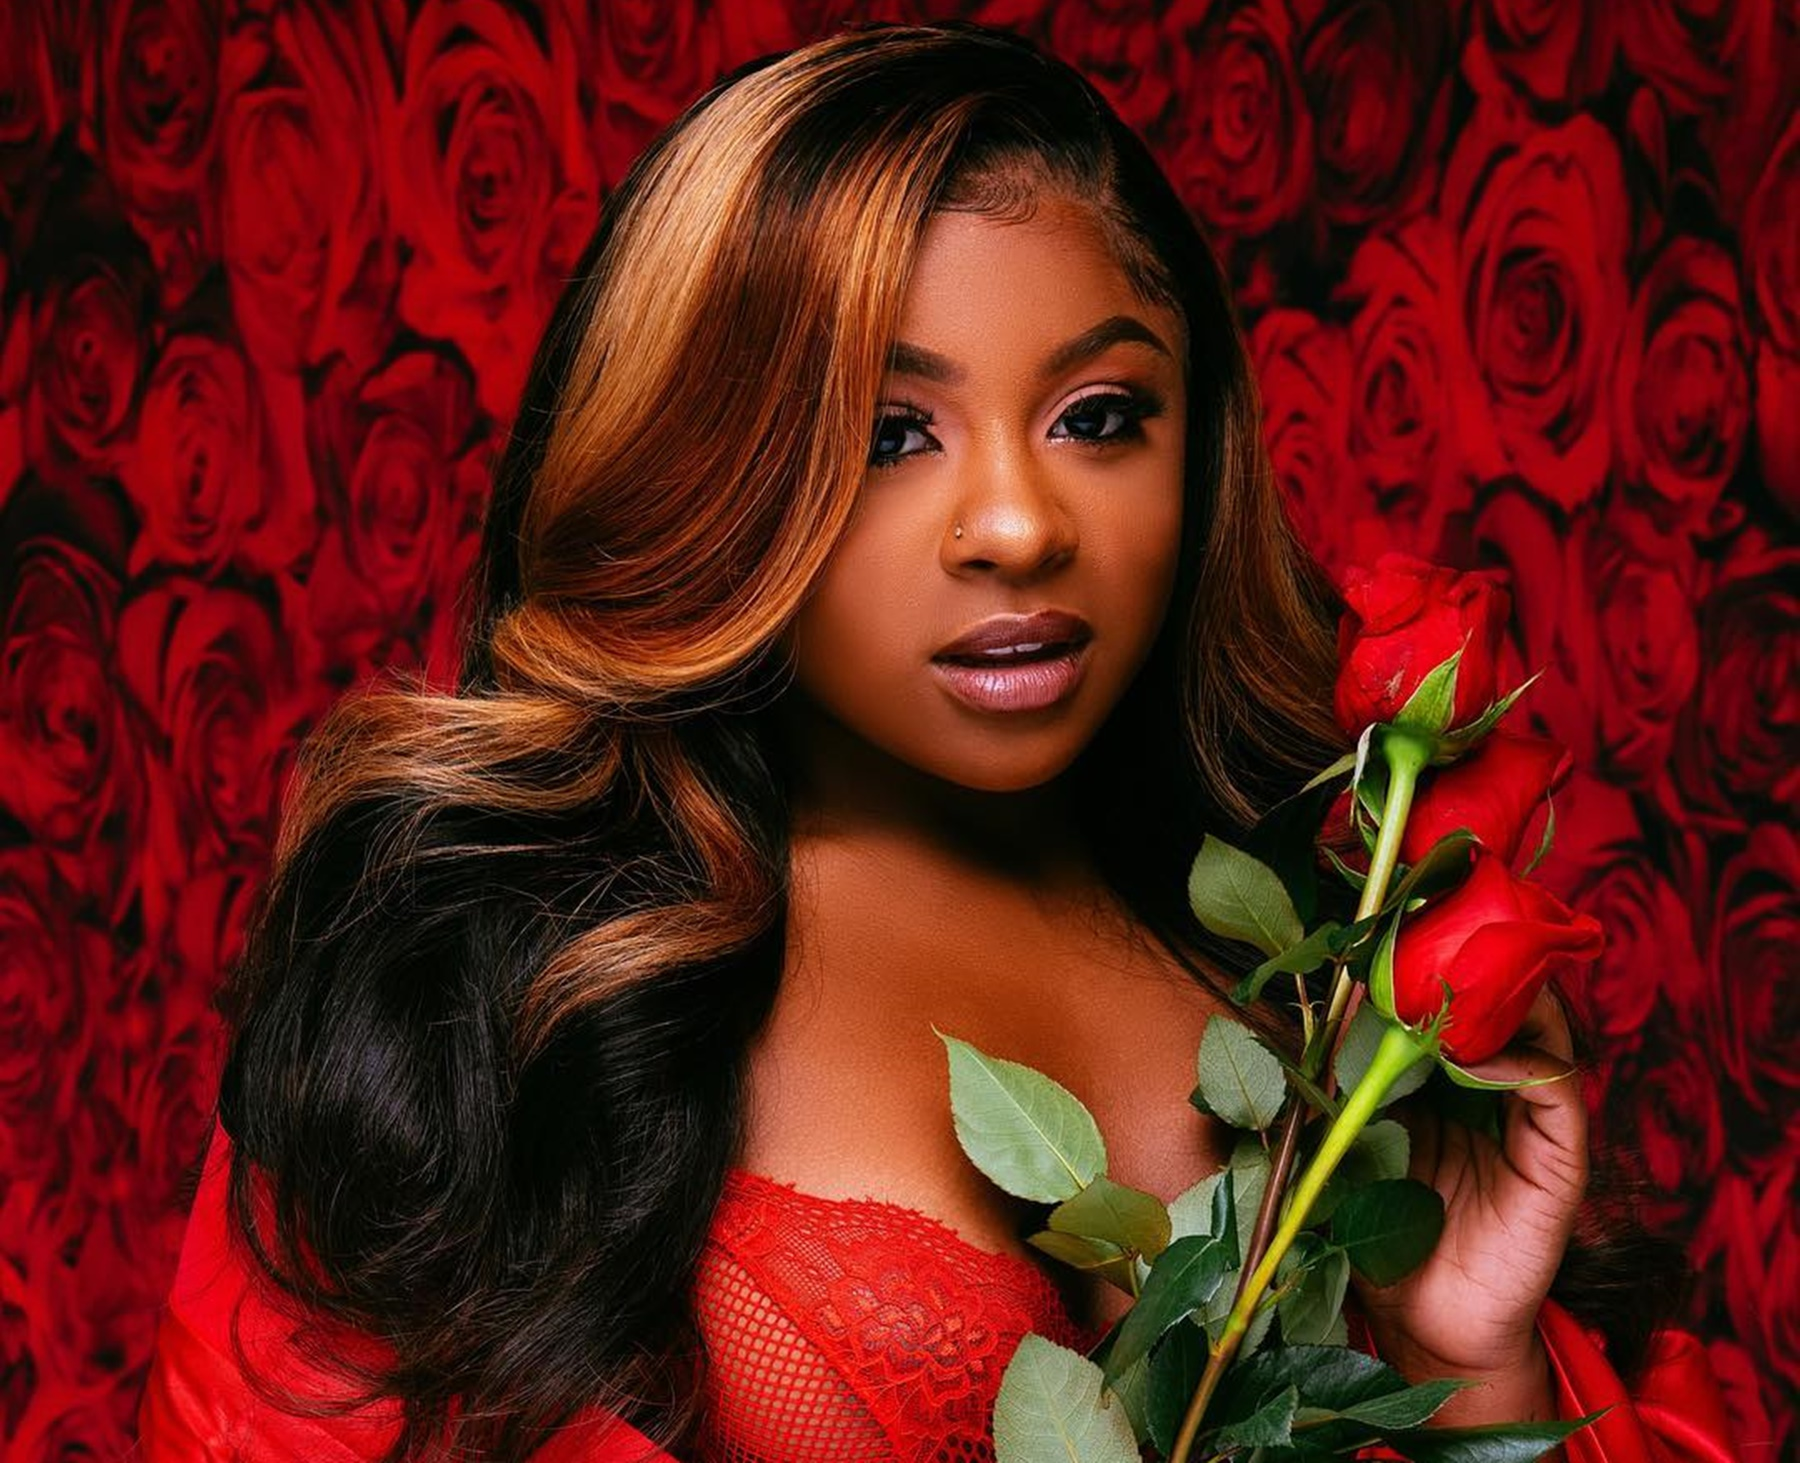 Reginae Carter's Fans Praise Her Beauty After She Gets Body Shamed By Haters